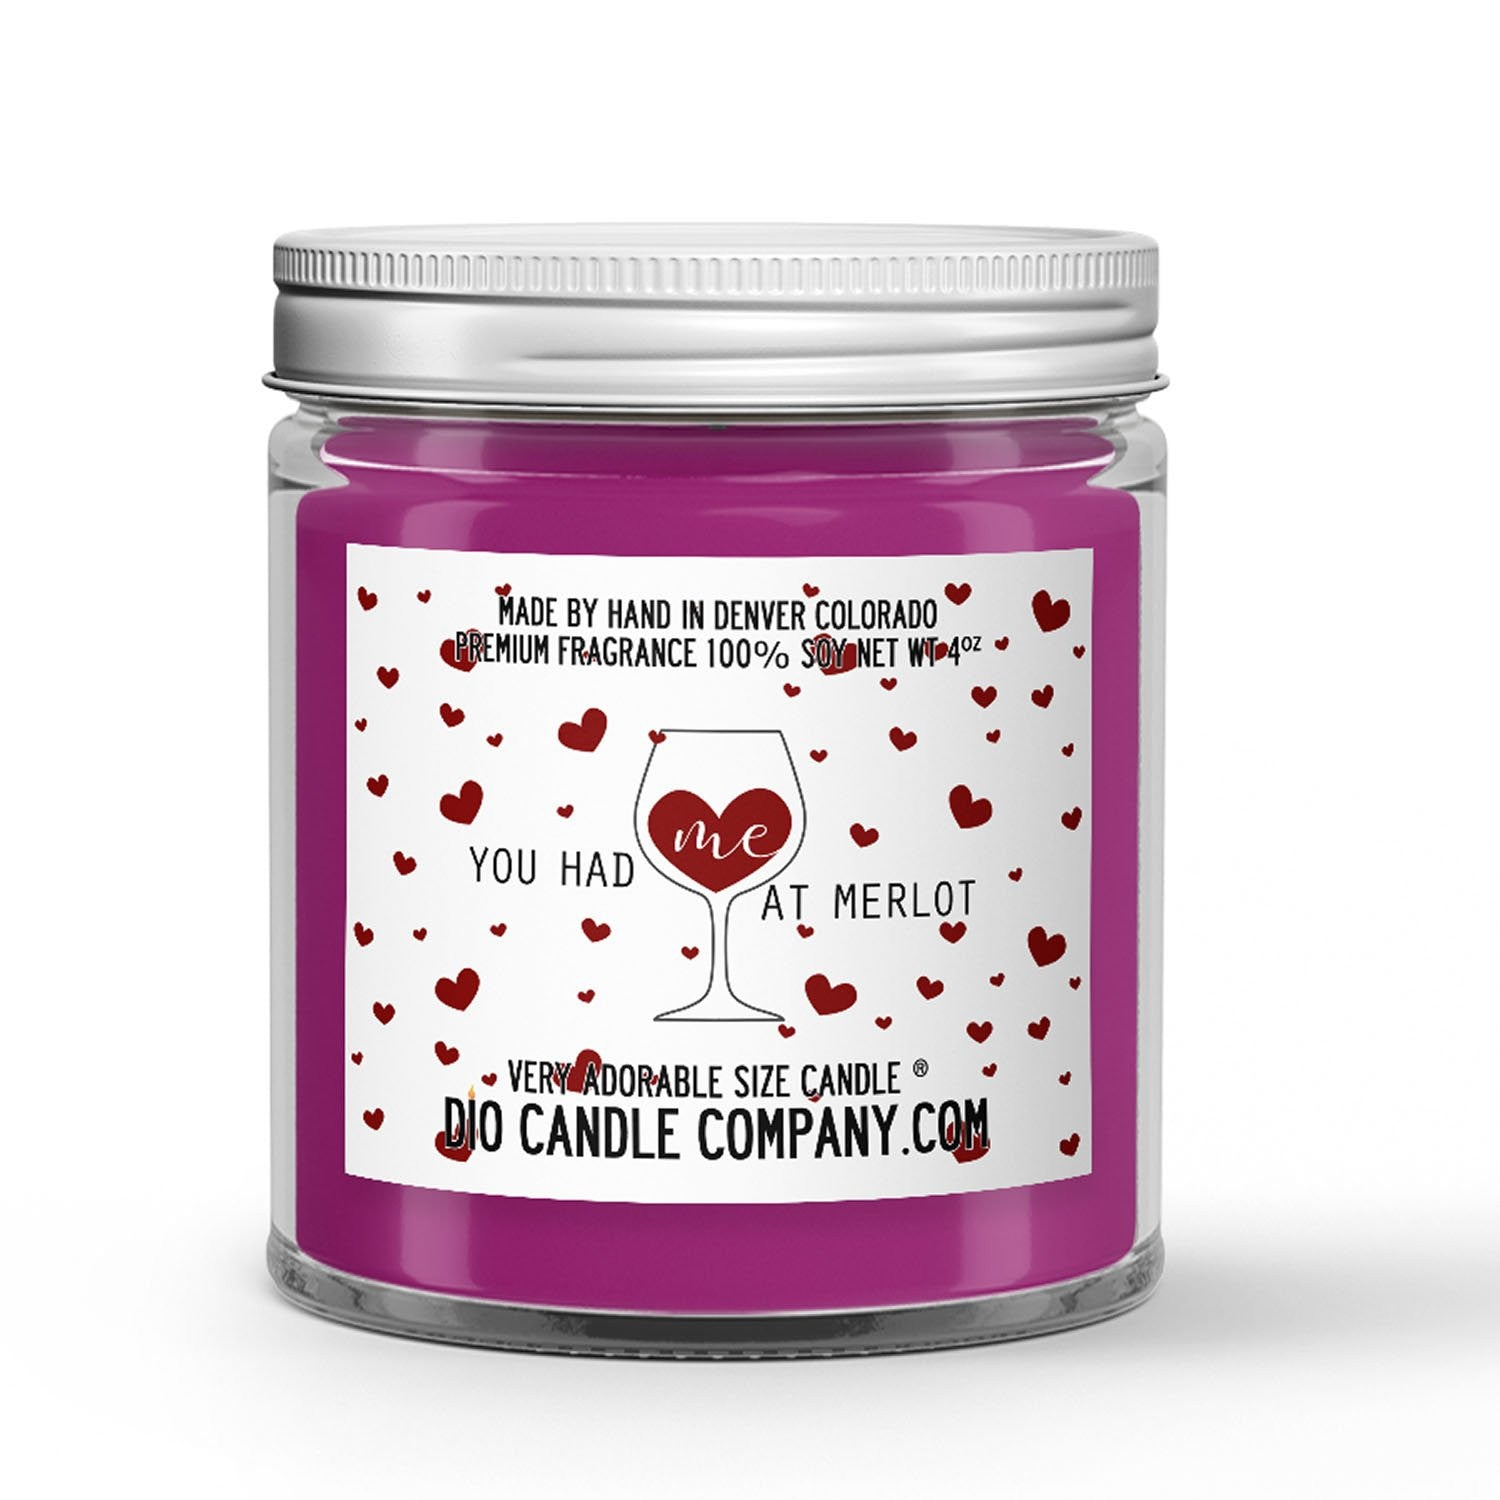 You Had Me At Merlot Candle - Merlot Red Wine - 4oz Very Adorable Size Candle® - Dio Candle Company